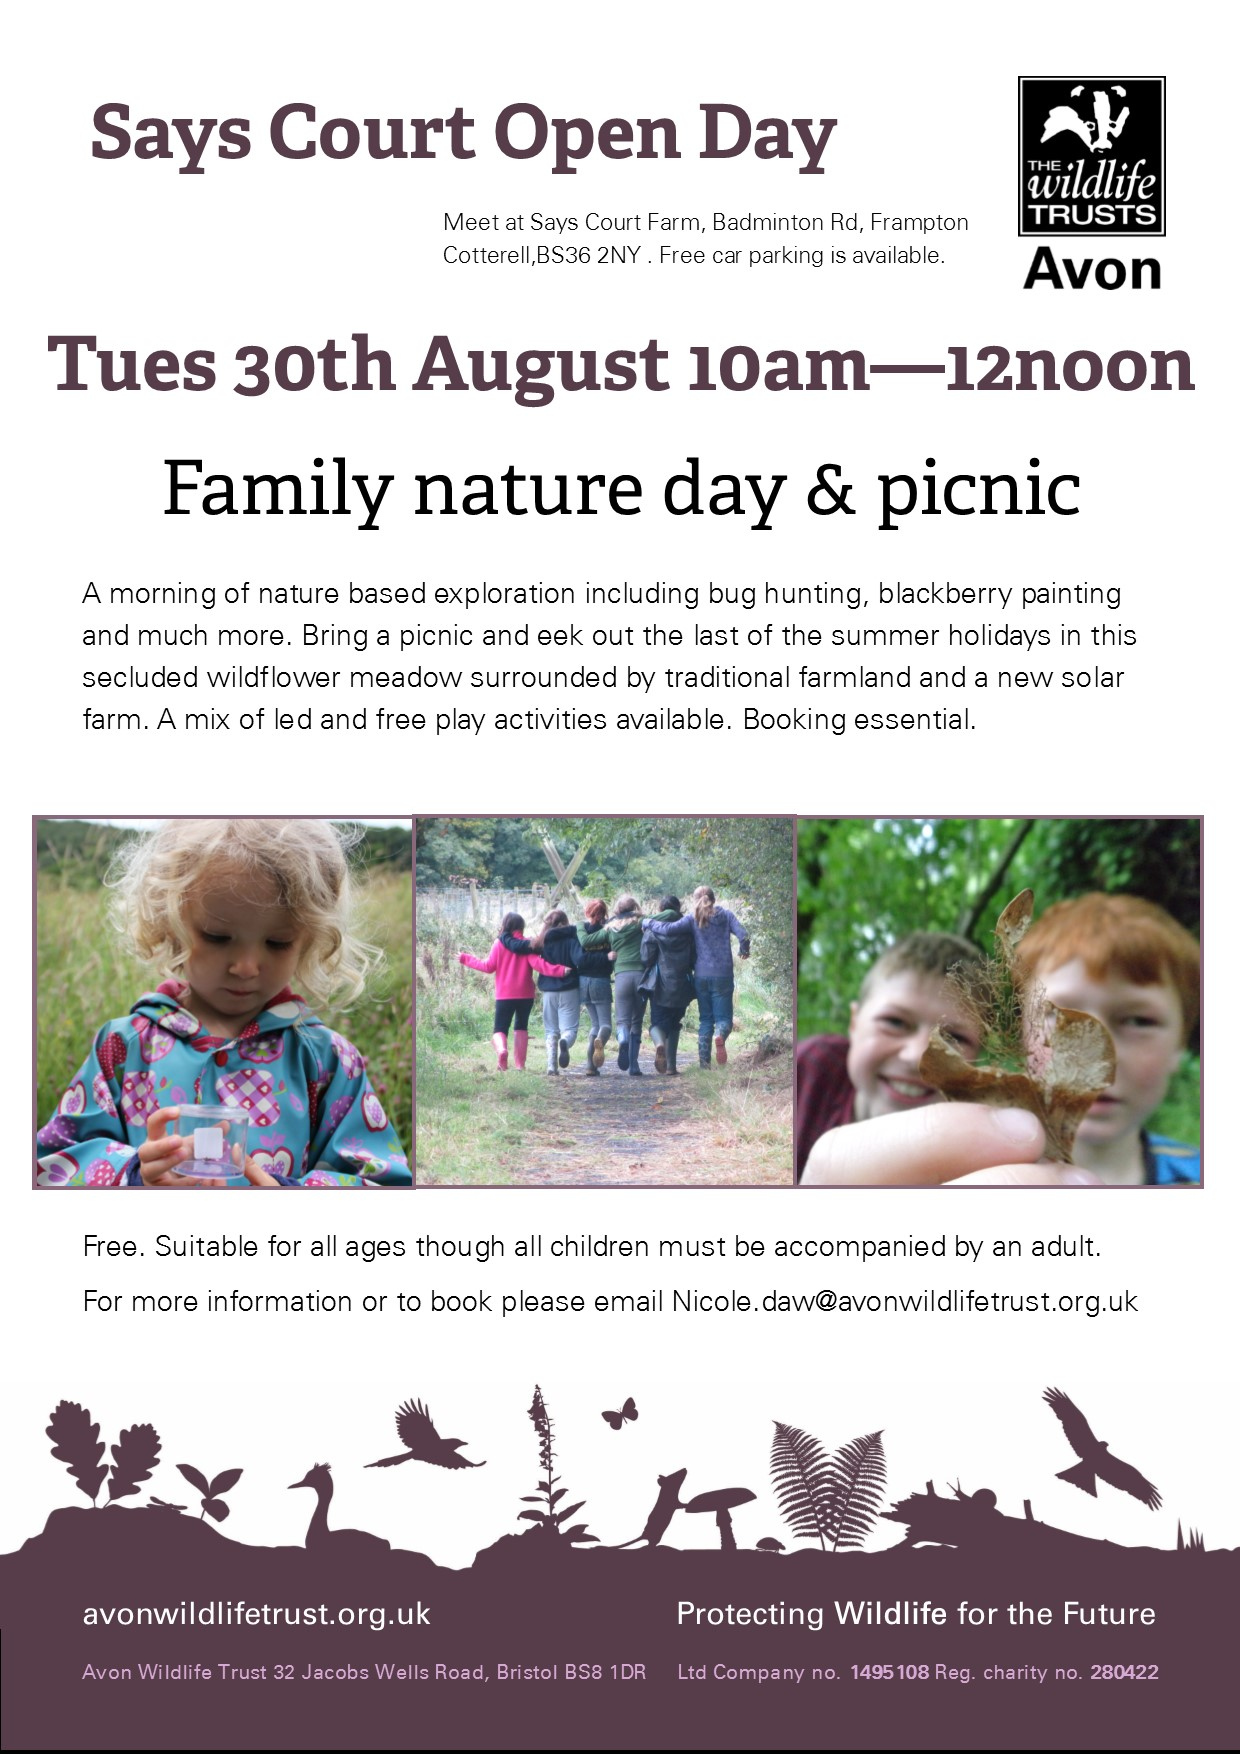 Family nature day & picnic at Says Court Farm